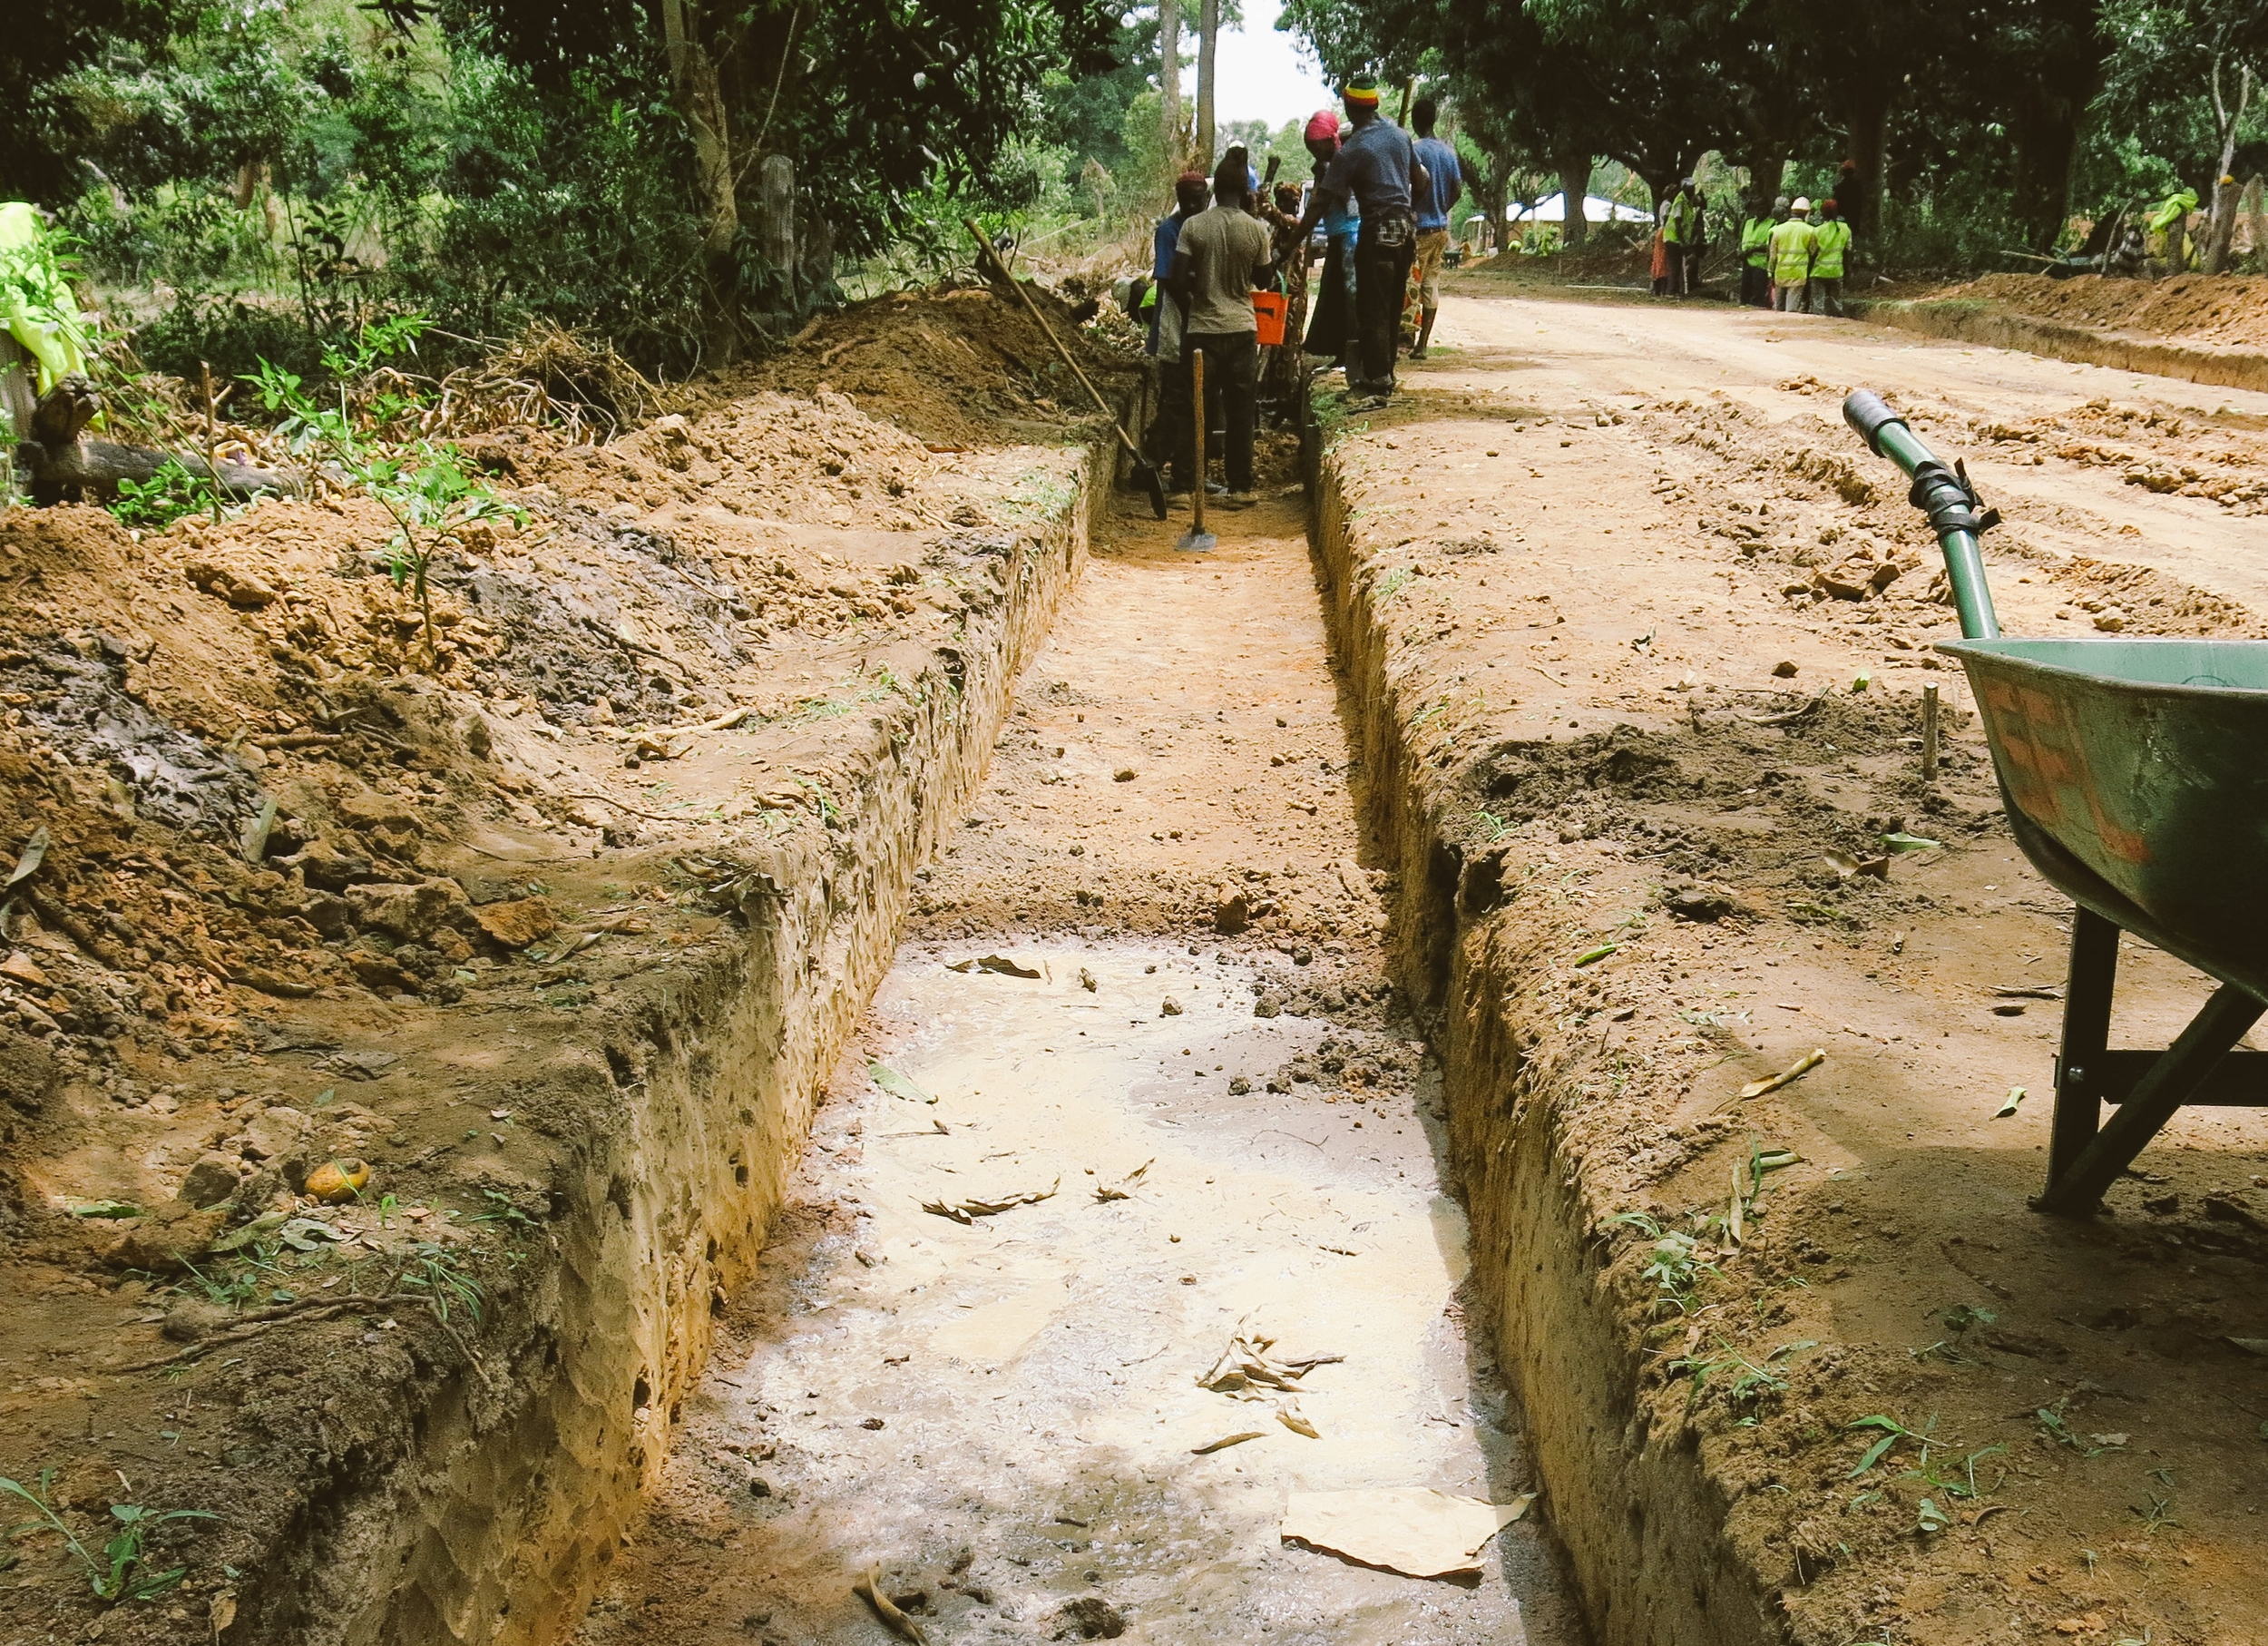 Drainage ditch ready for reinforcement